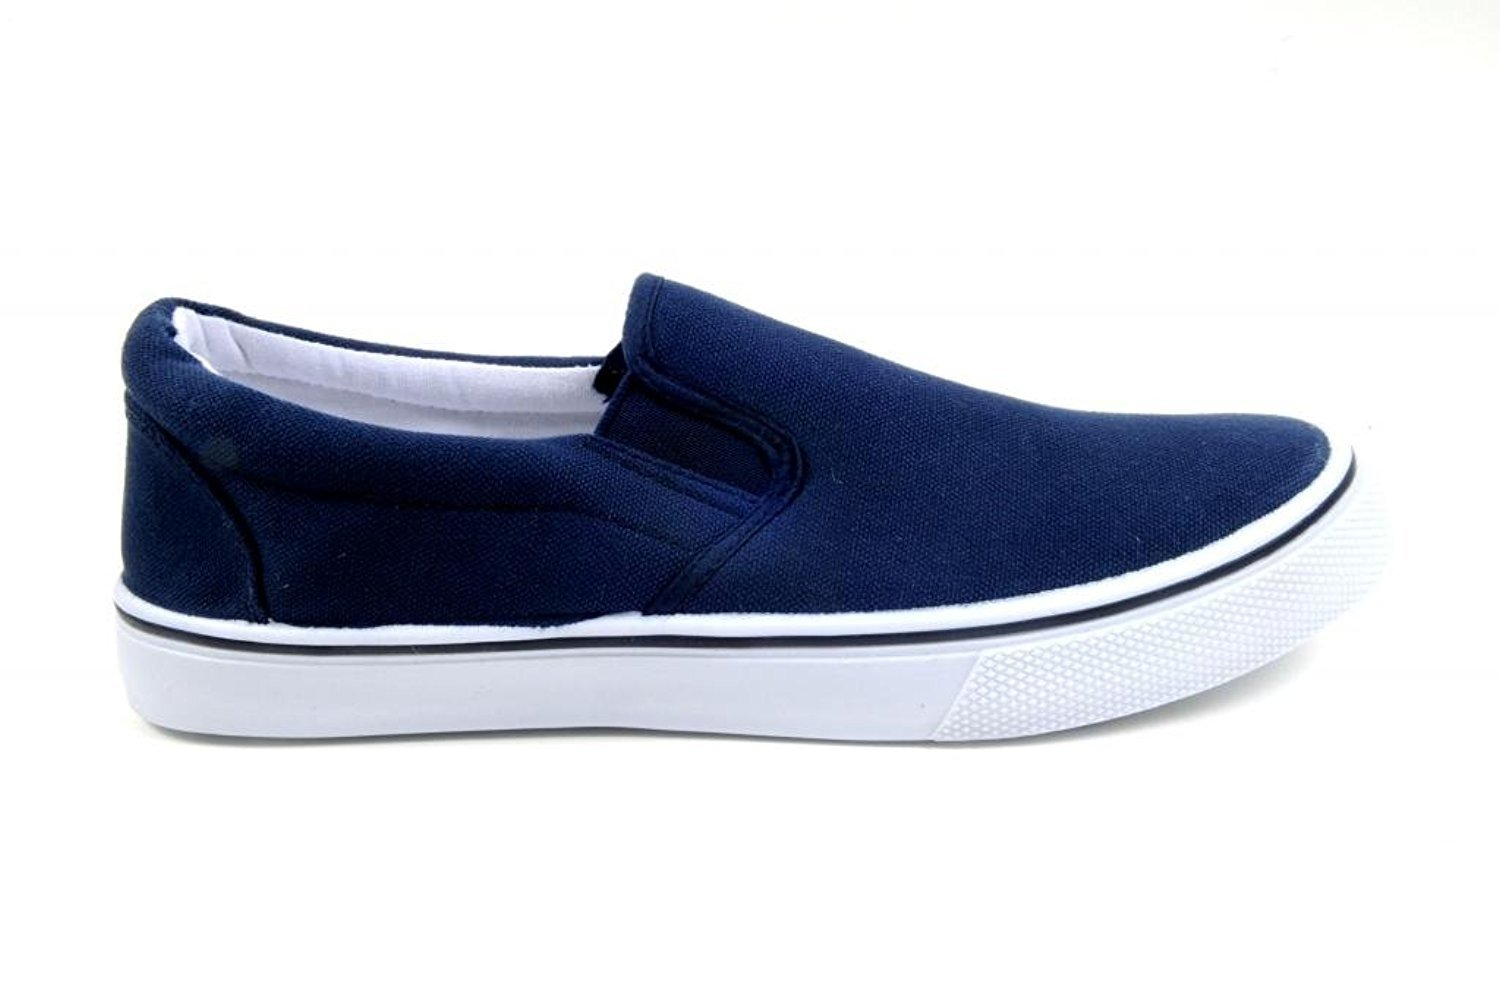 zig zag slip ons casual s shoes canvas black navy or